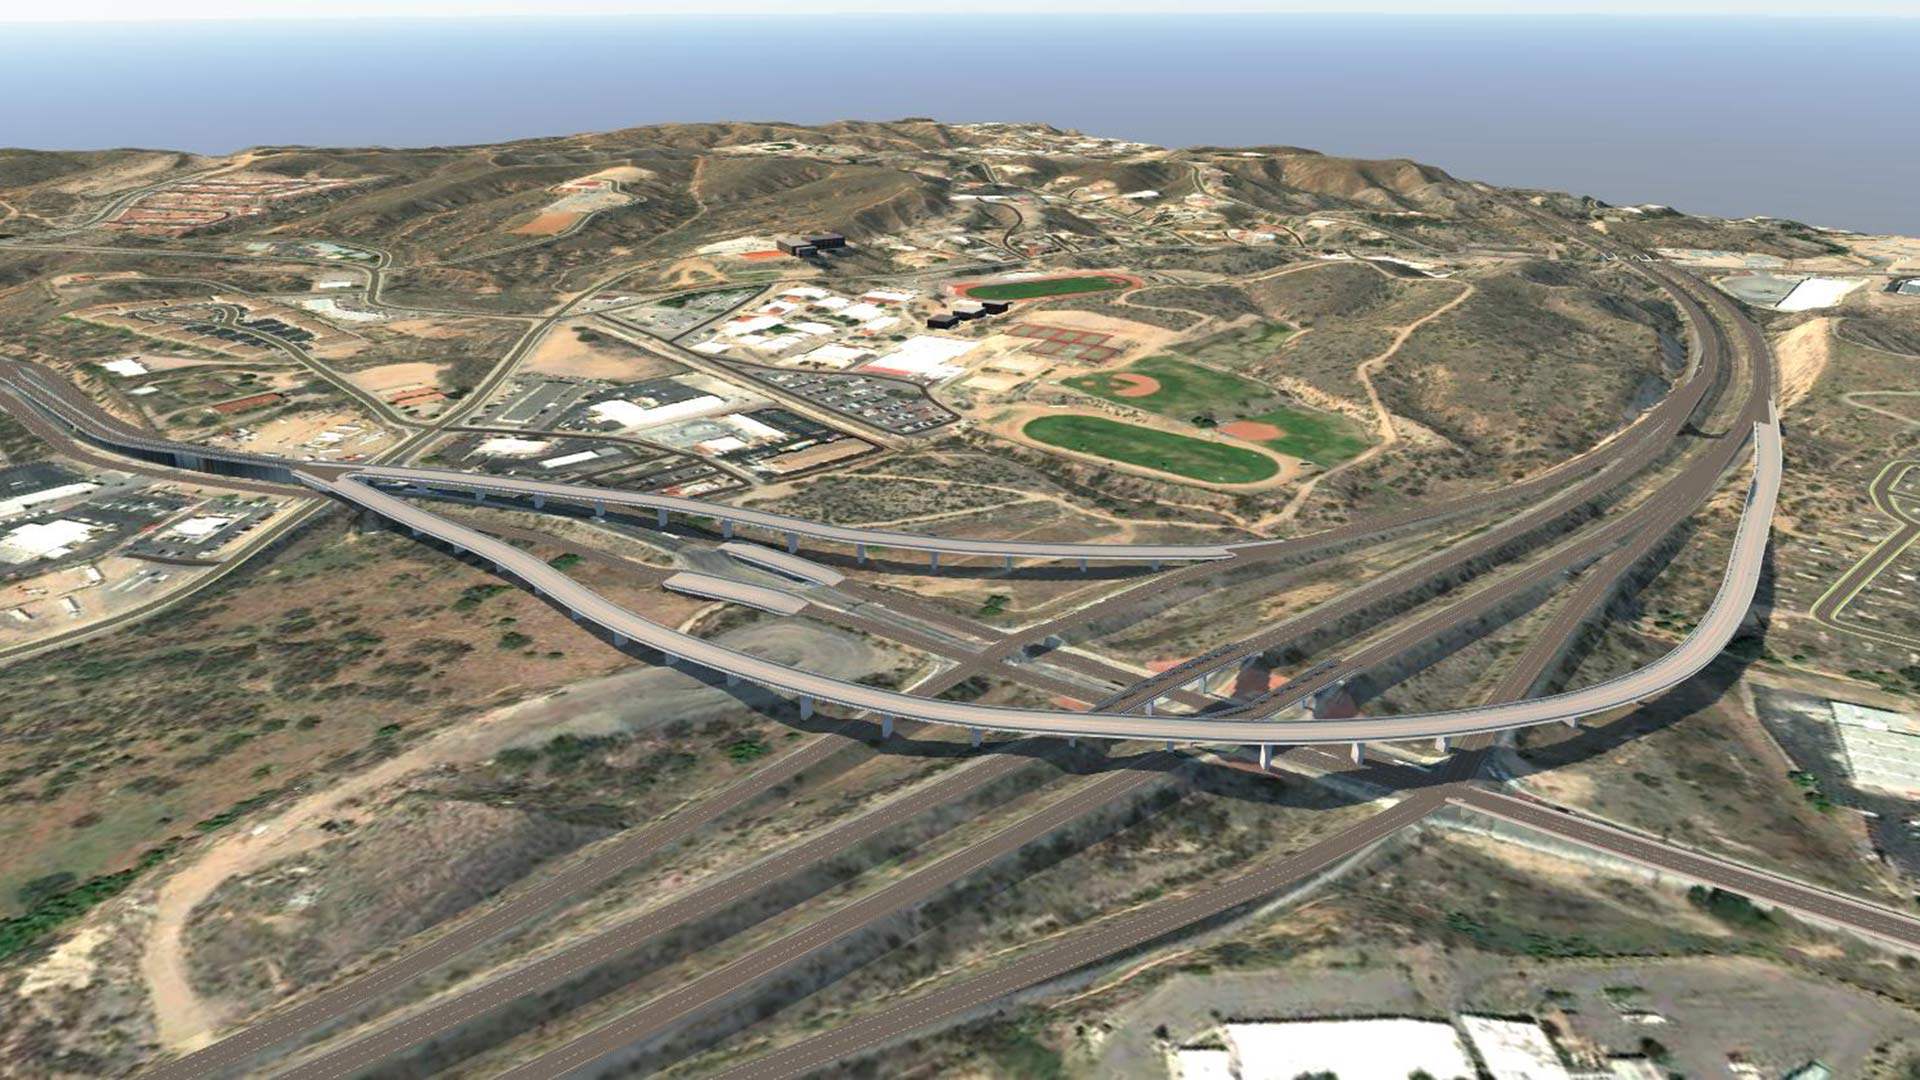 A computer-generated image shows proposed flyover ramps connecting State Route 189 to Interstate 19 near Nogales. The improvements, planned for completion in 2021, will give commercial traffic from the Mariposa Port of Entry easier access to the interstate.